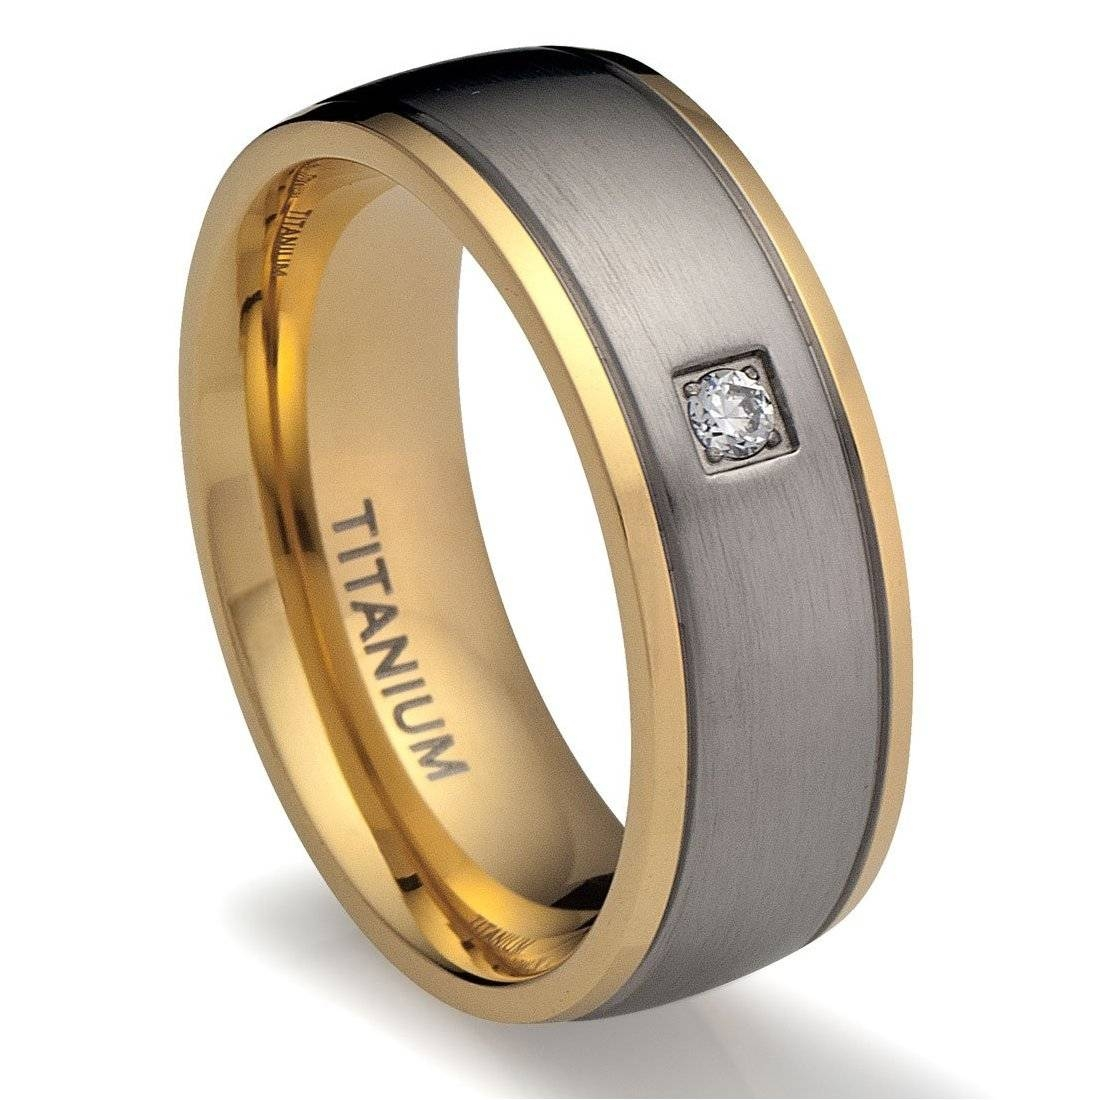 Wedding Rings : Mens Unique Wedding Bands Black Titanium The Pertaining To Cool Wedding Bands For Guys (View 1 of 15)